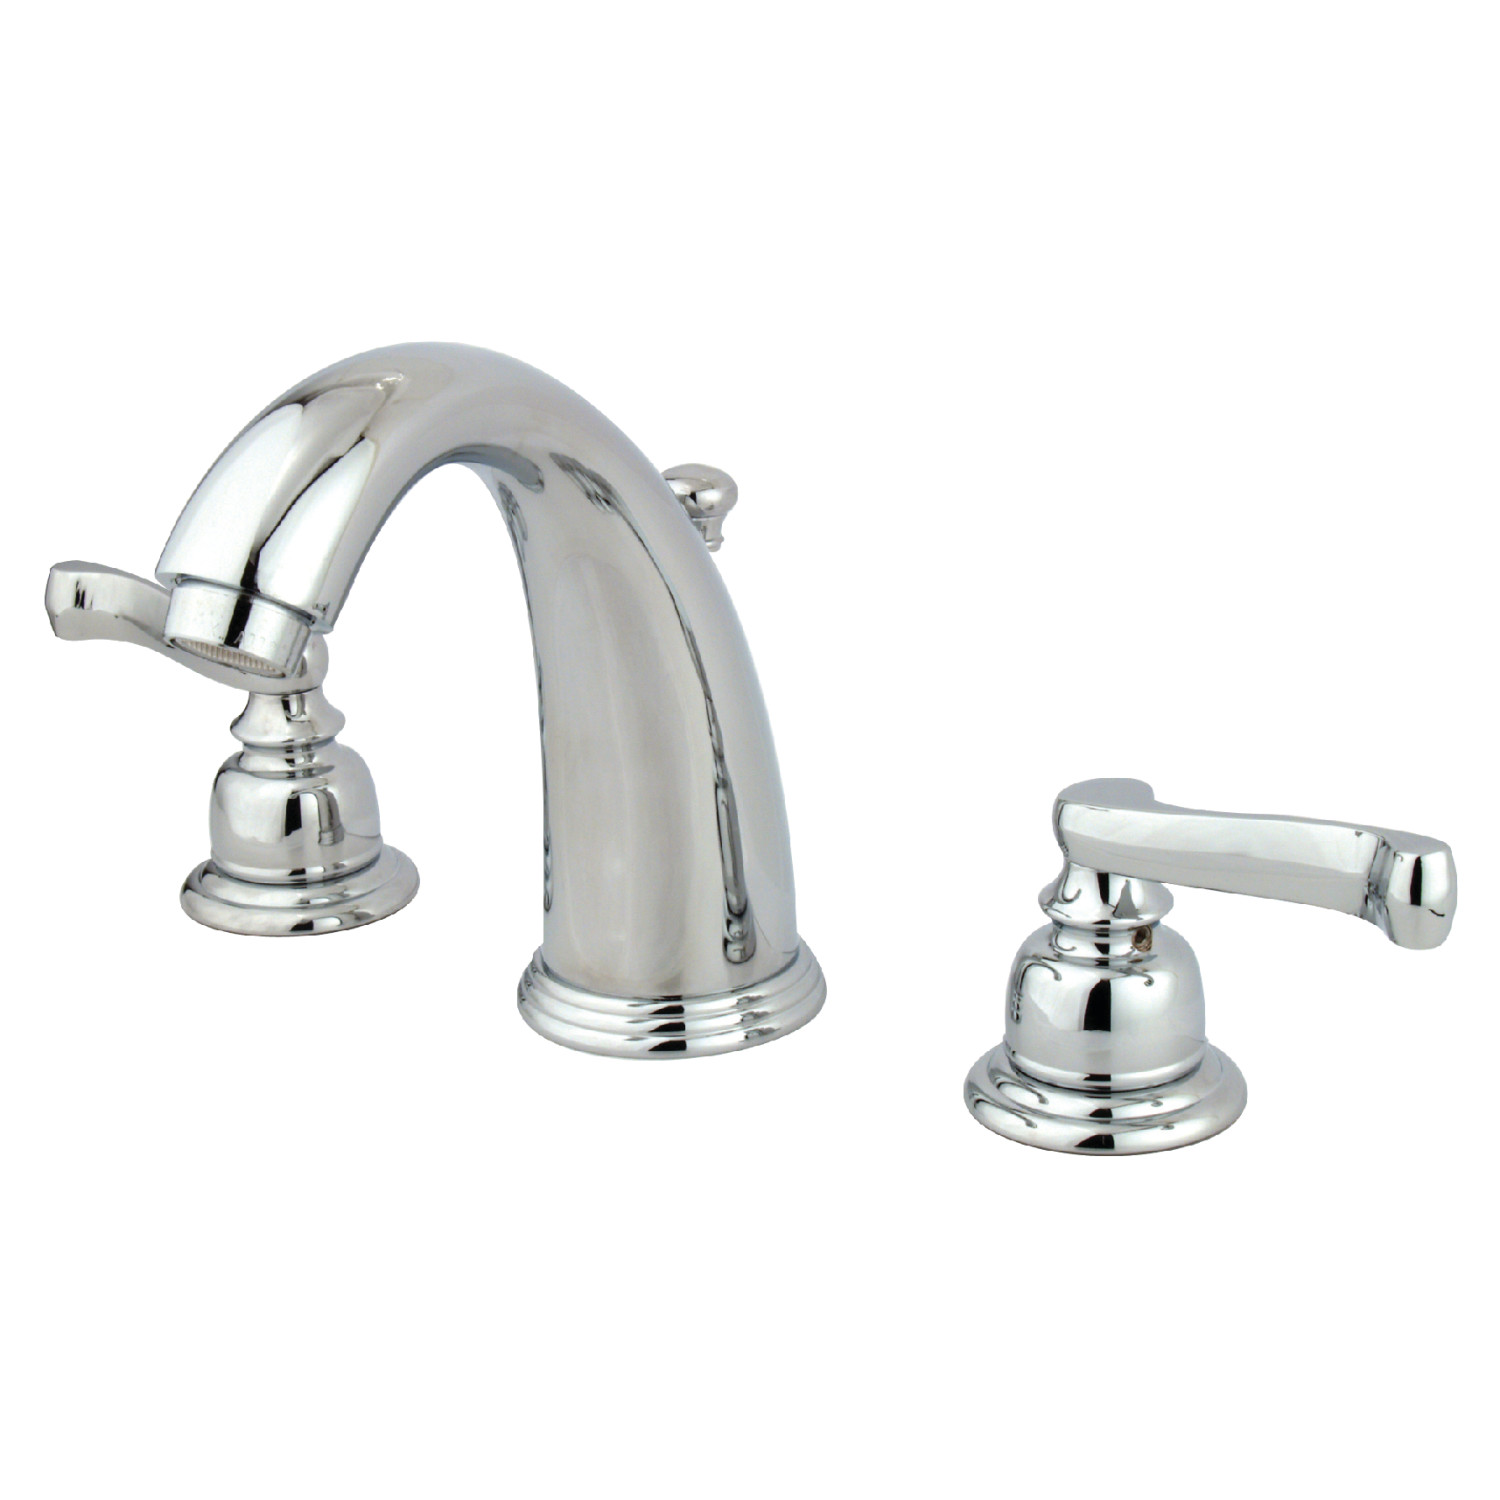 Traditional Two-Handle 3-Hole Deck Mounted Widespread Bathroom Faucet with Plastic Pop-Up with 4 Finish Options